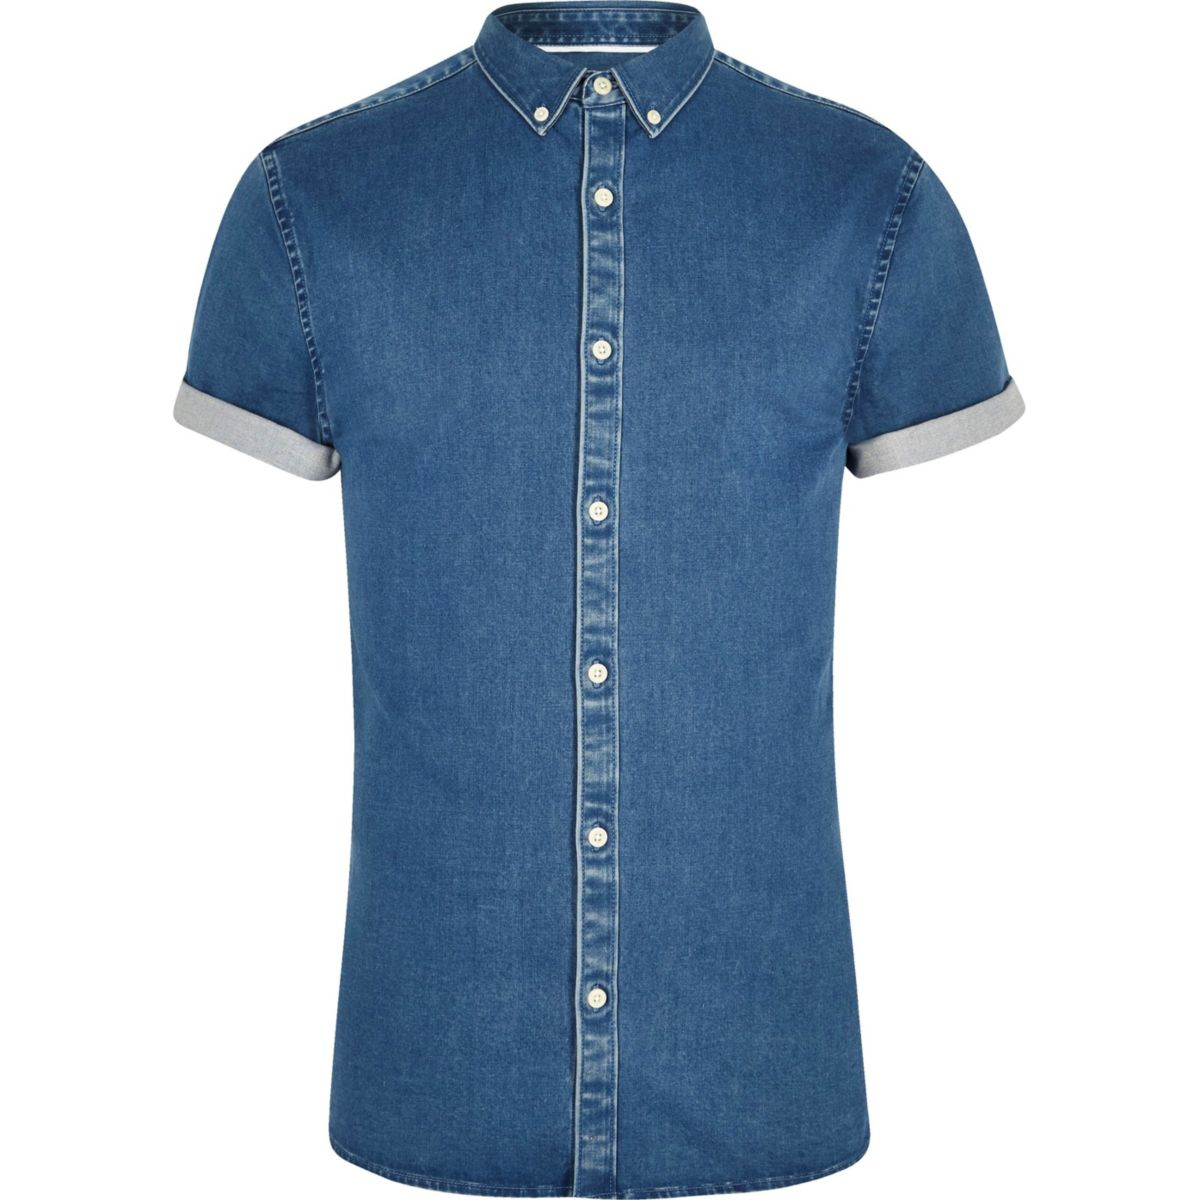 Blue short sleeve muscle fit denim shirt